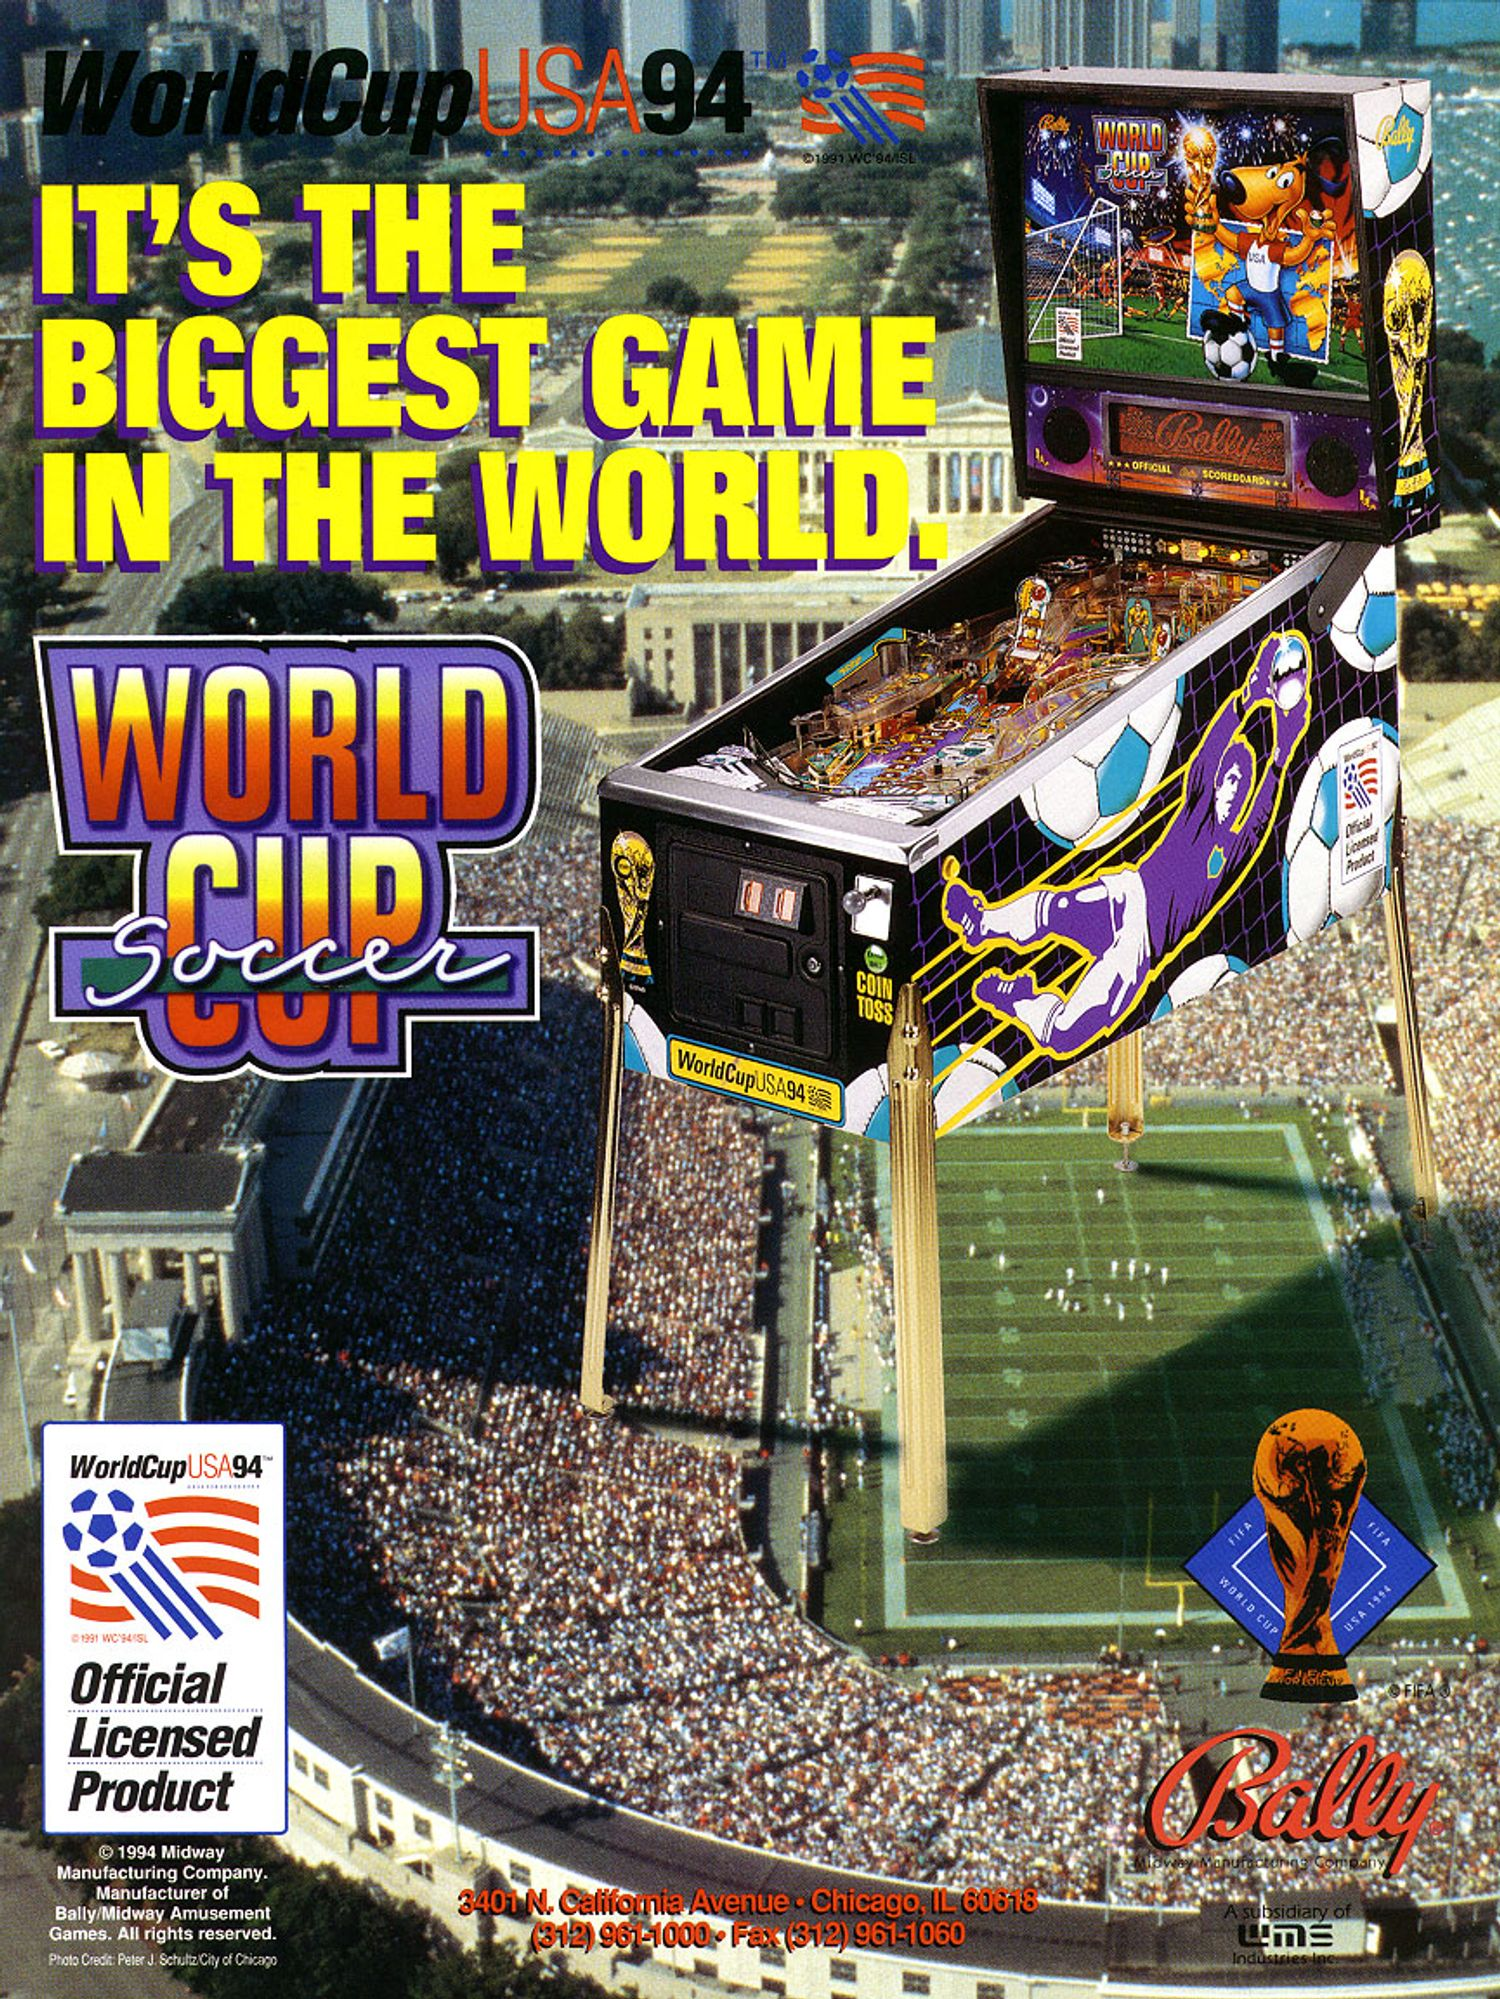 World Cup Soccer Flyer Seite 1